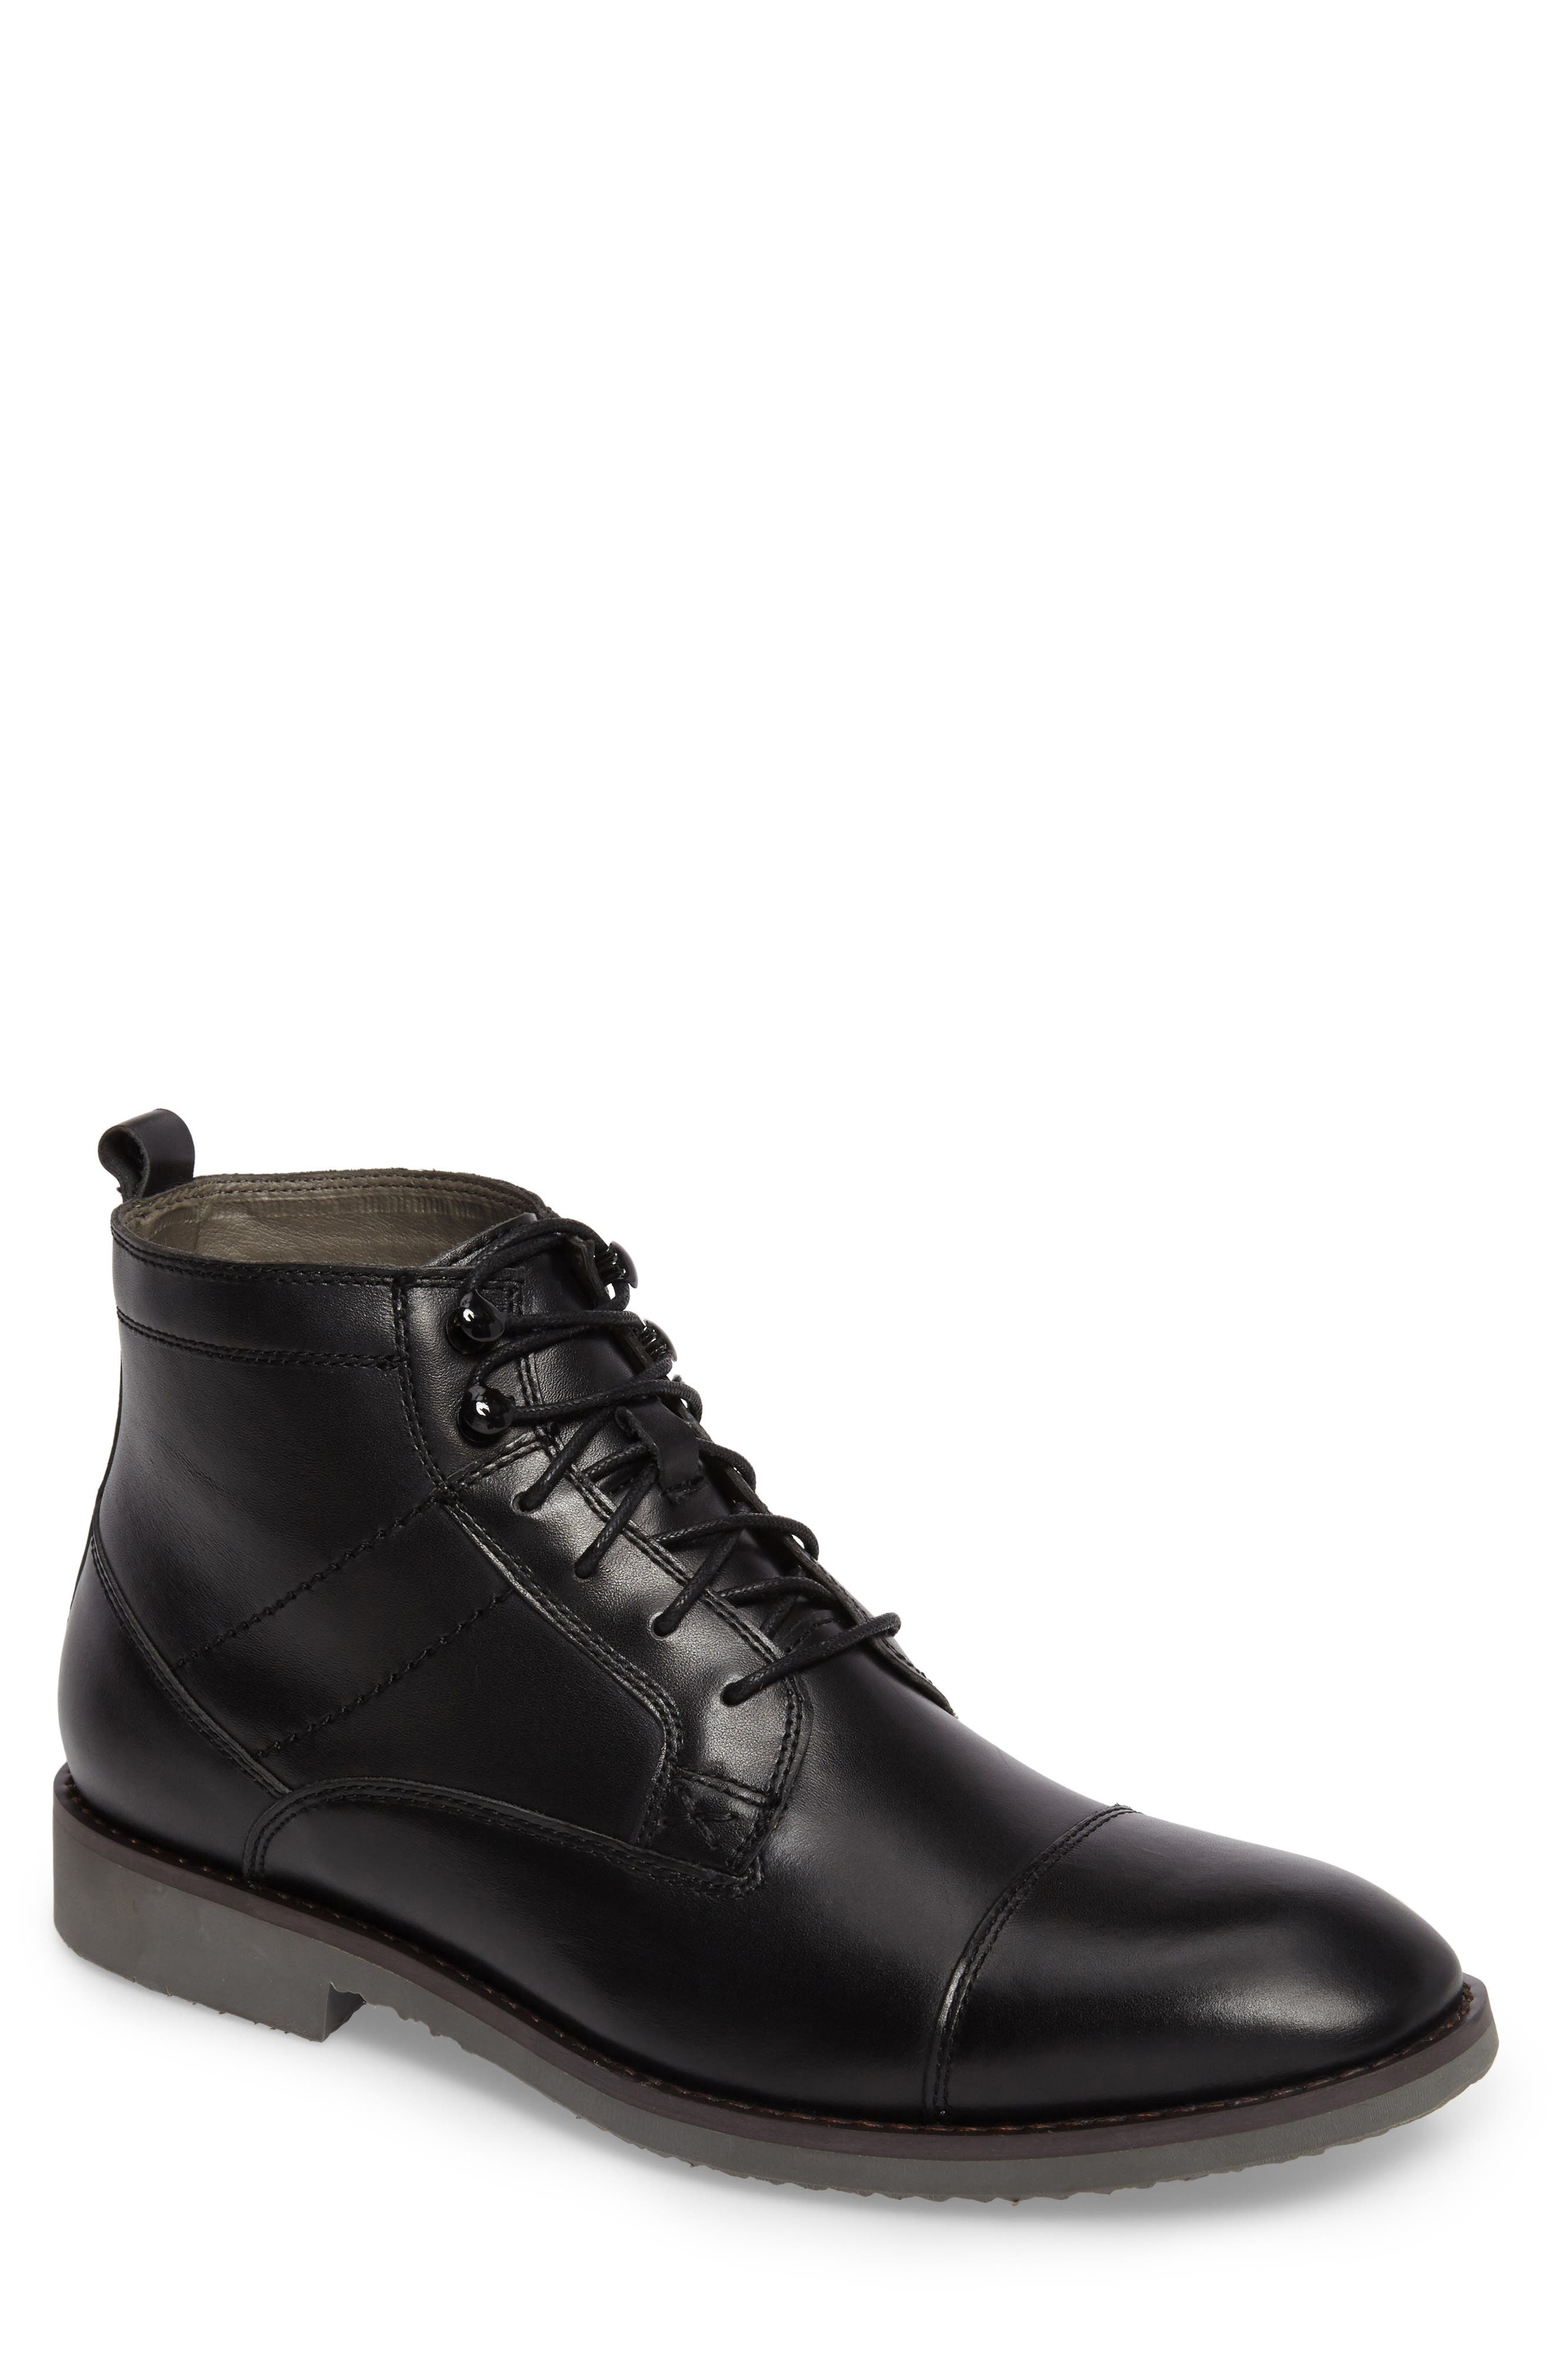 Main Image - English Laundry Ensor Cap Toe Boot (Men)